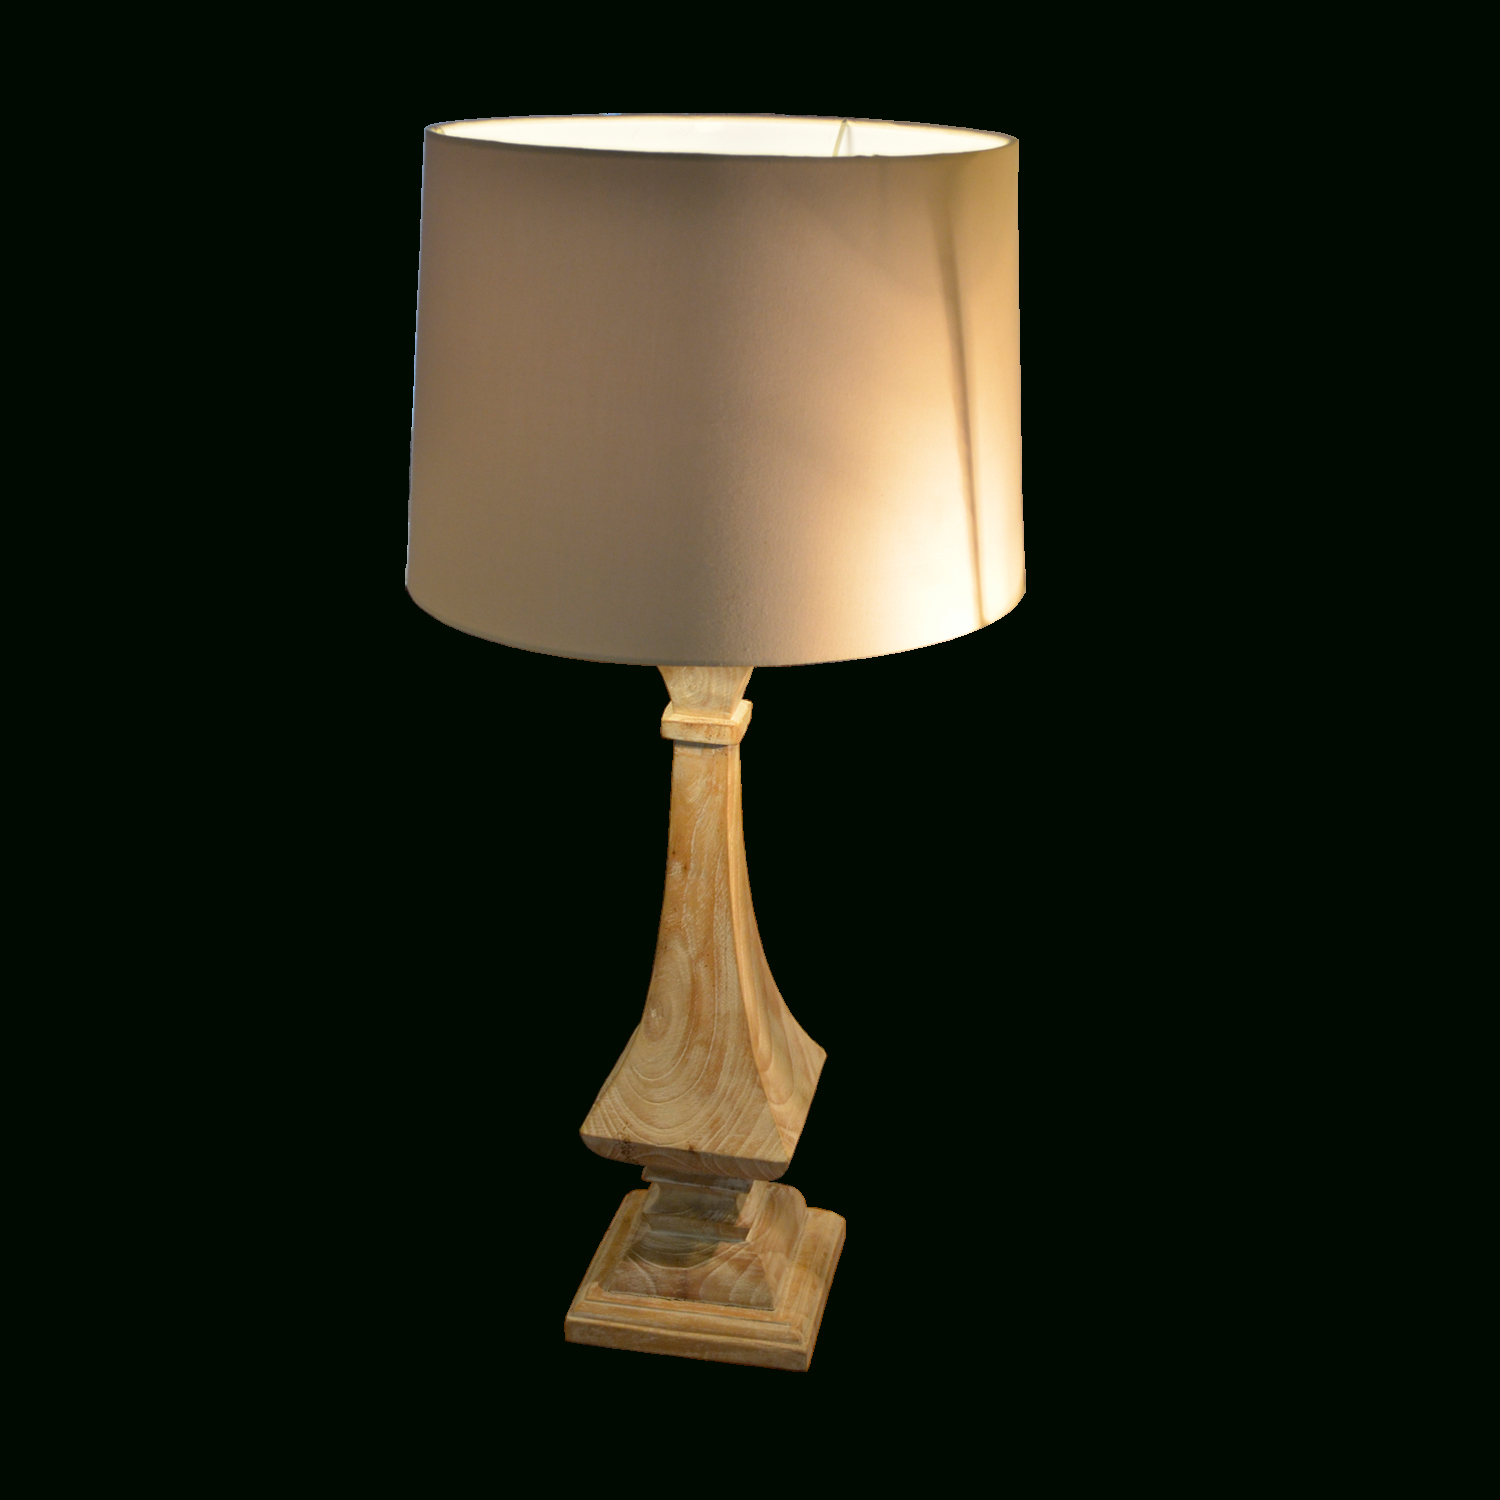 Maison Table Lamp With Regard To Angelina 1 Light Single Cylinder Pendants (Image 24 of 30)